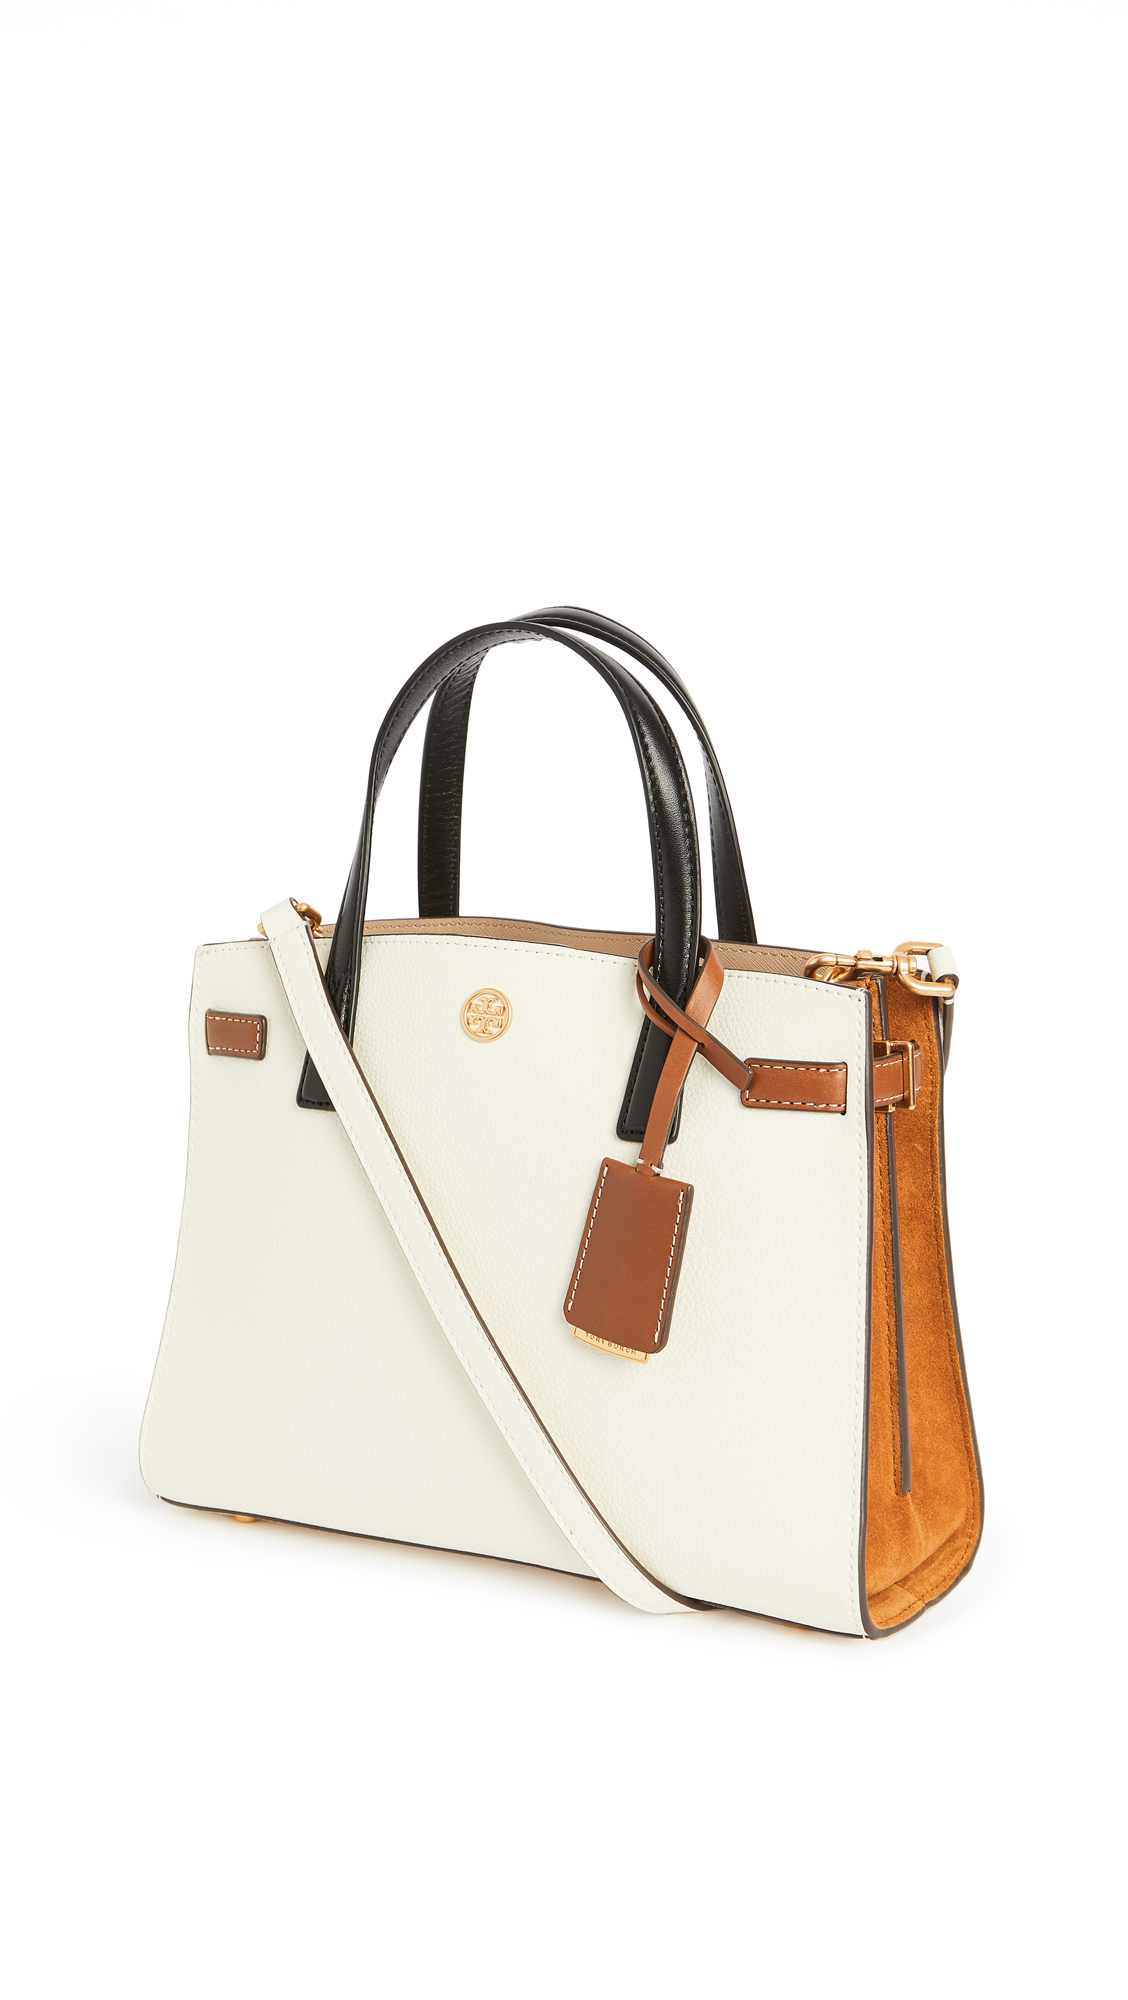 Tory Burch Walker Colorblock Small Satchel Bag